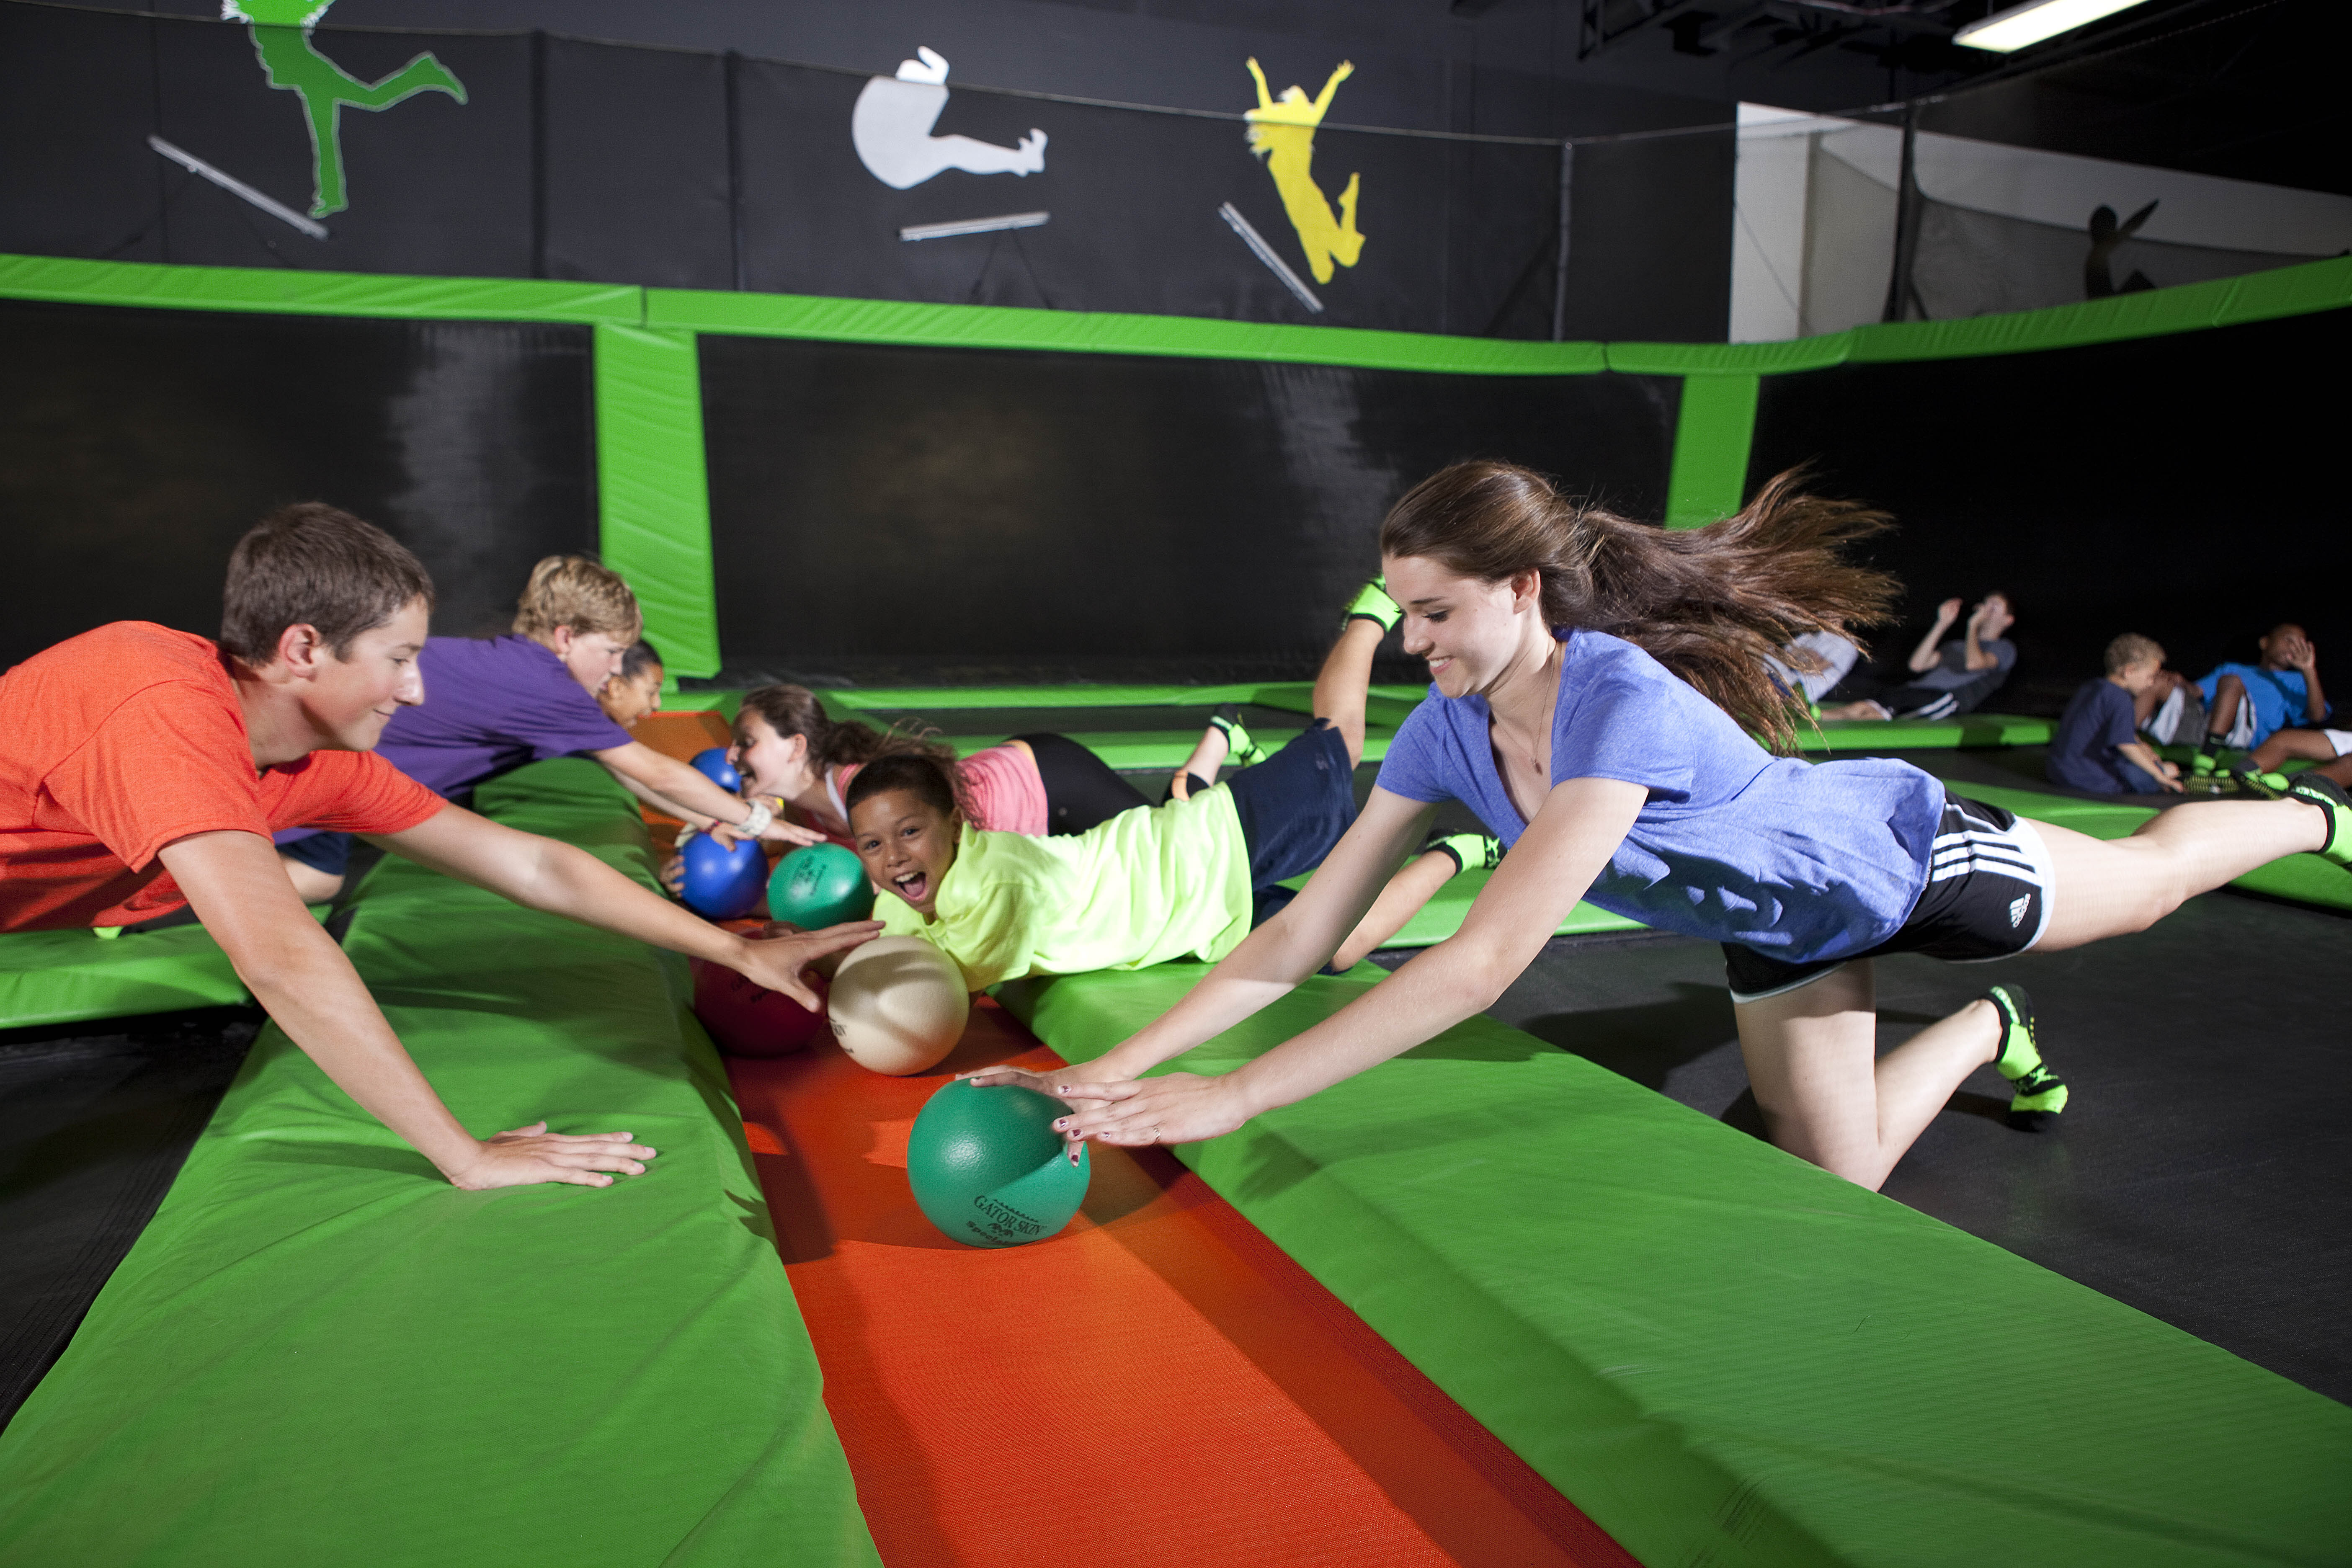 Launch Indoor Trampoline Park Nashua Dodgeball Launch Trampoline Park